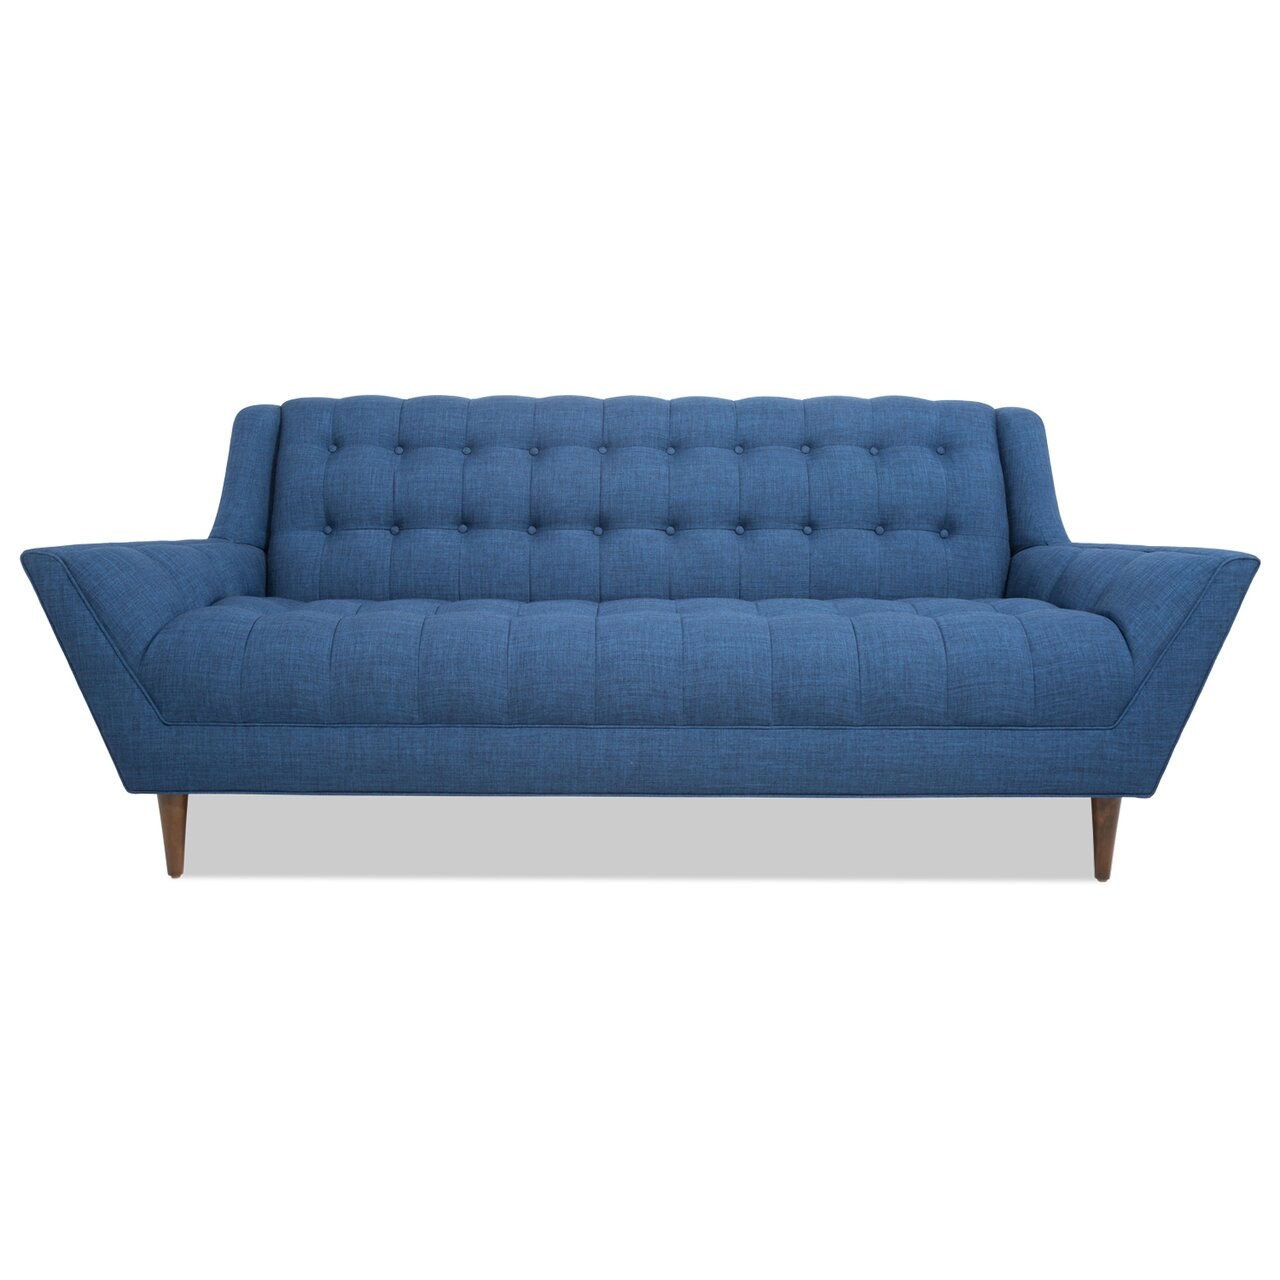 Danish modern sleeper sofa danish sleeper sofa amsterdam for Danish design sofa